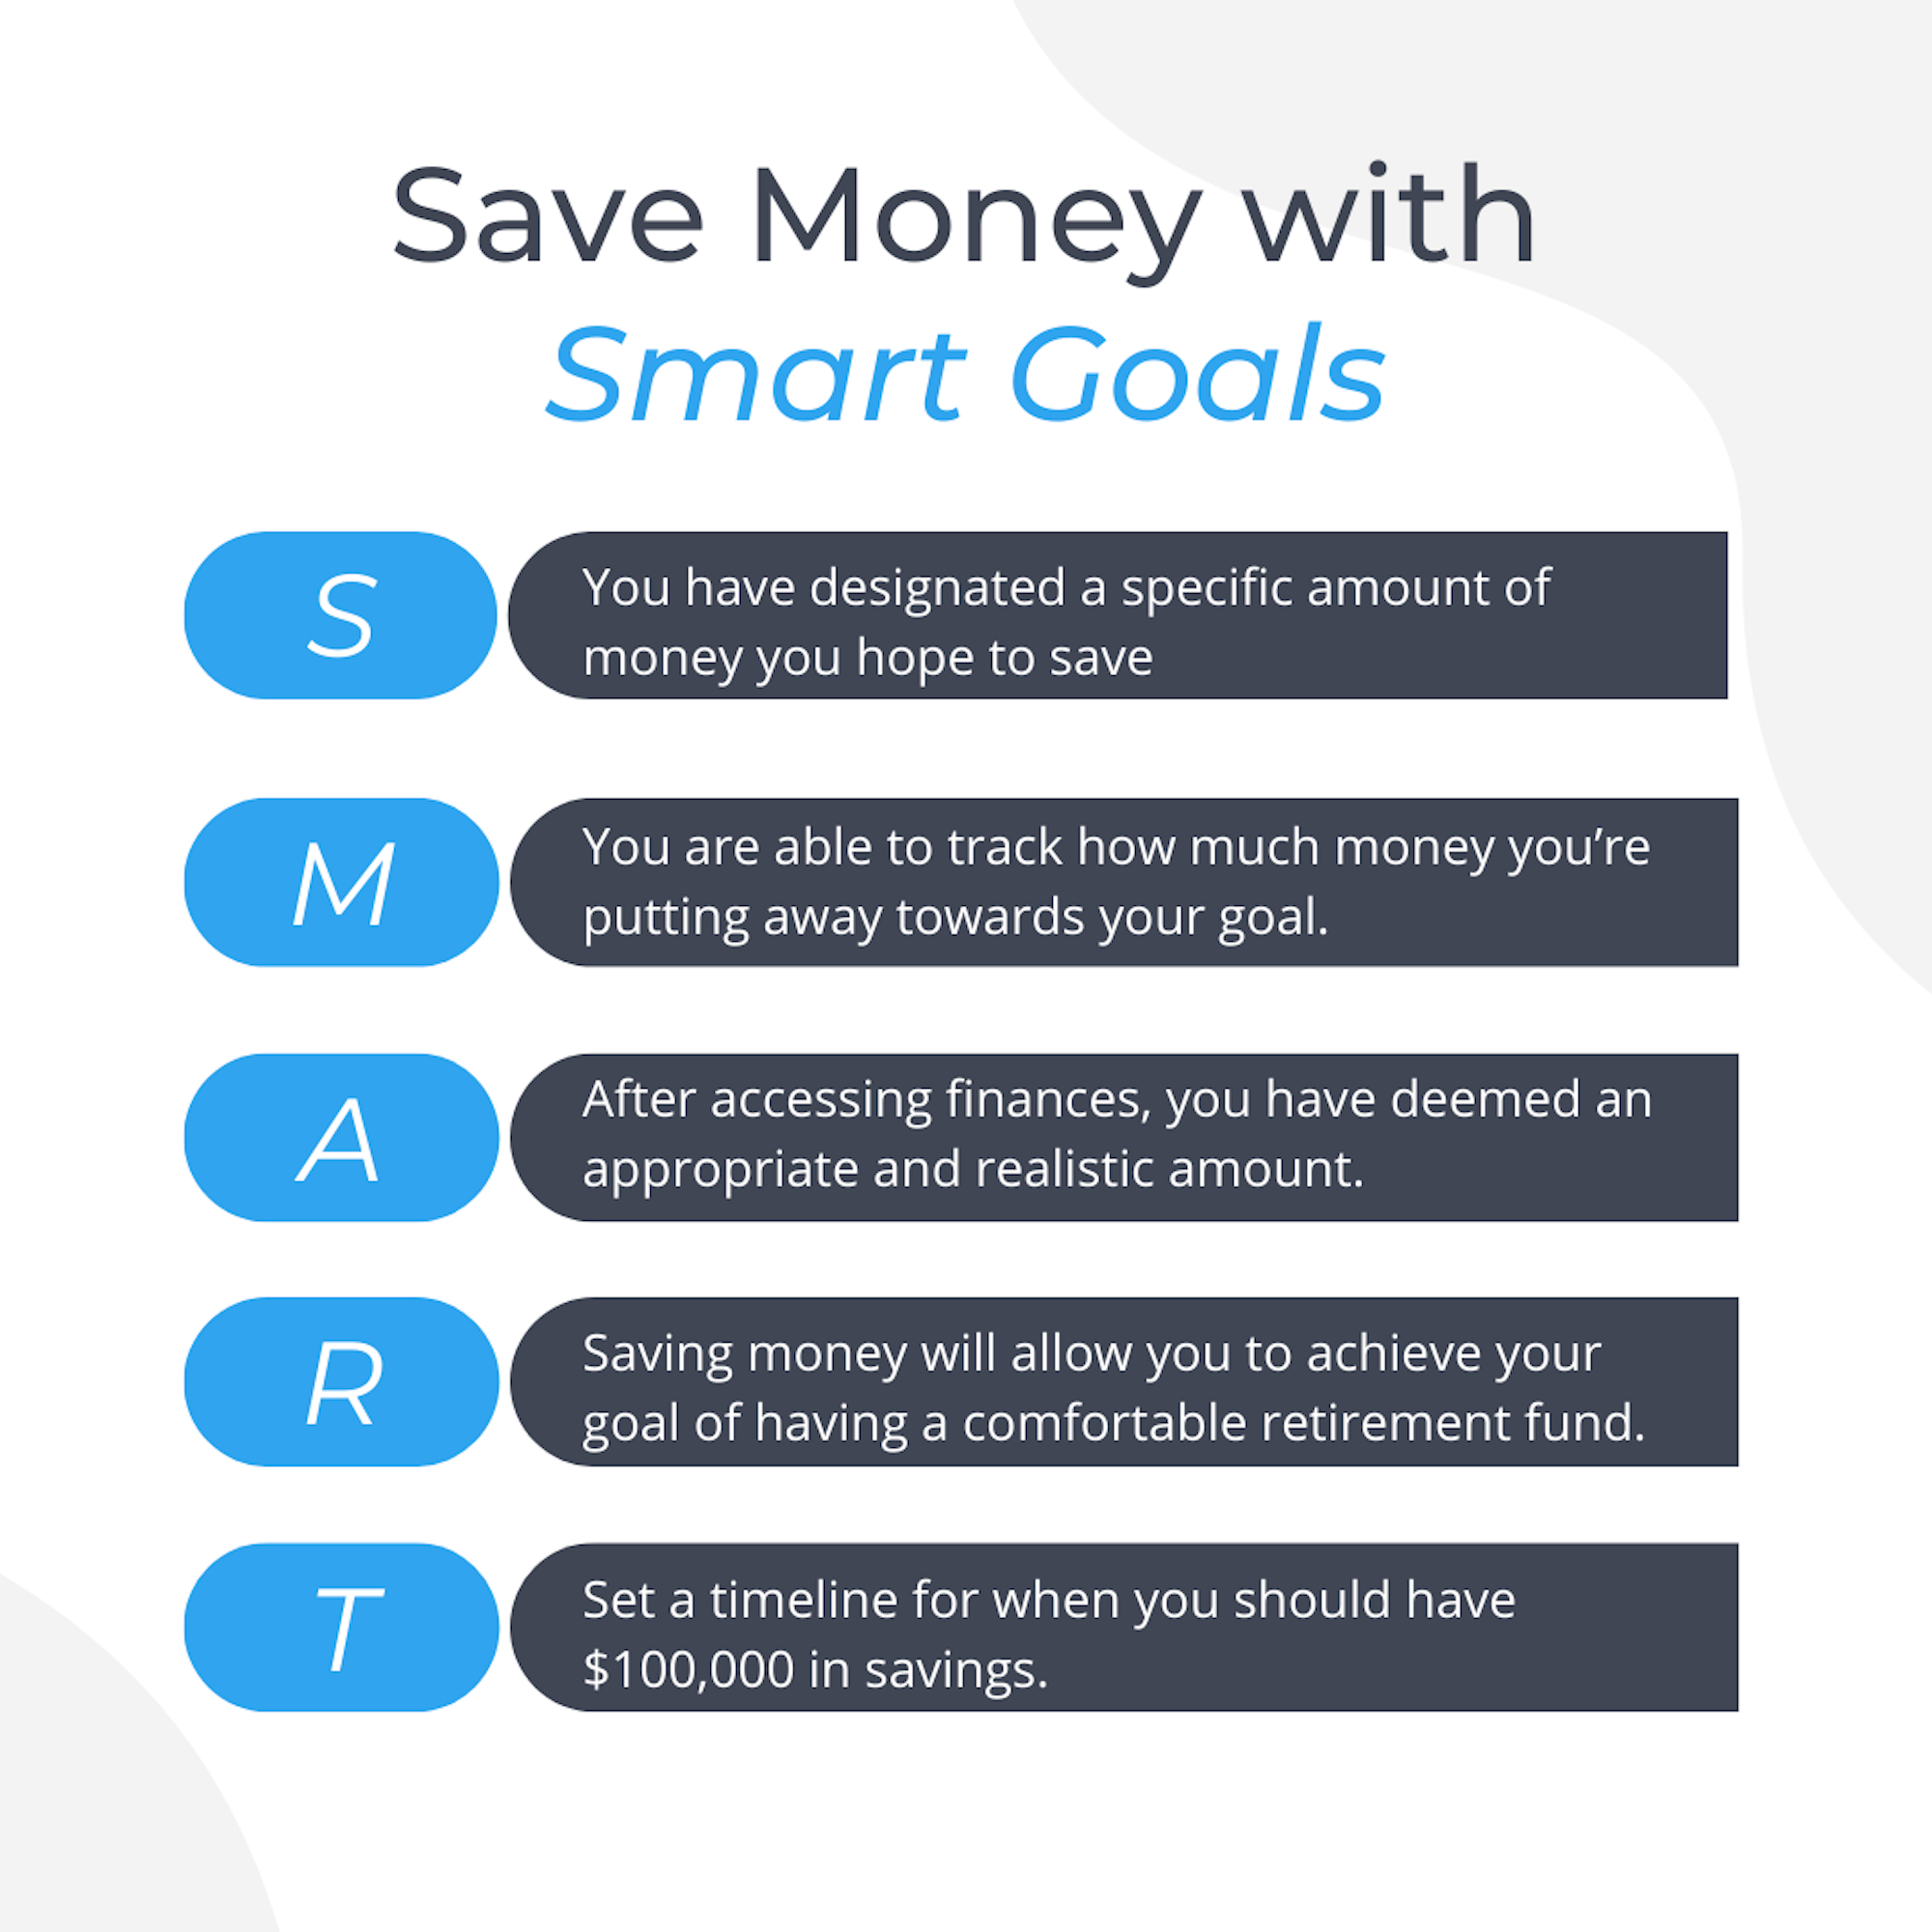 save money with smart goals